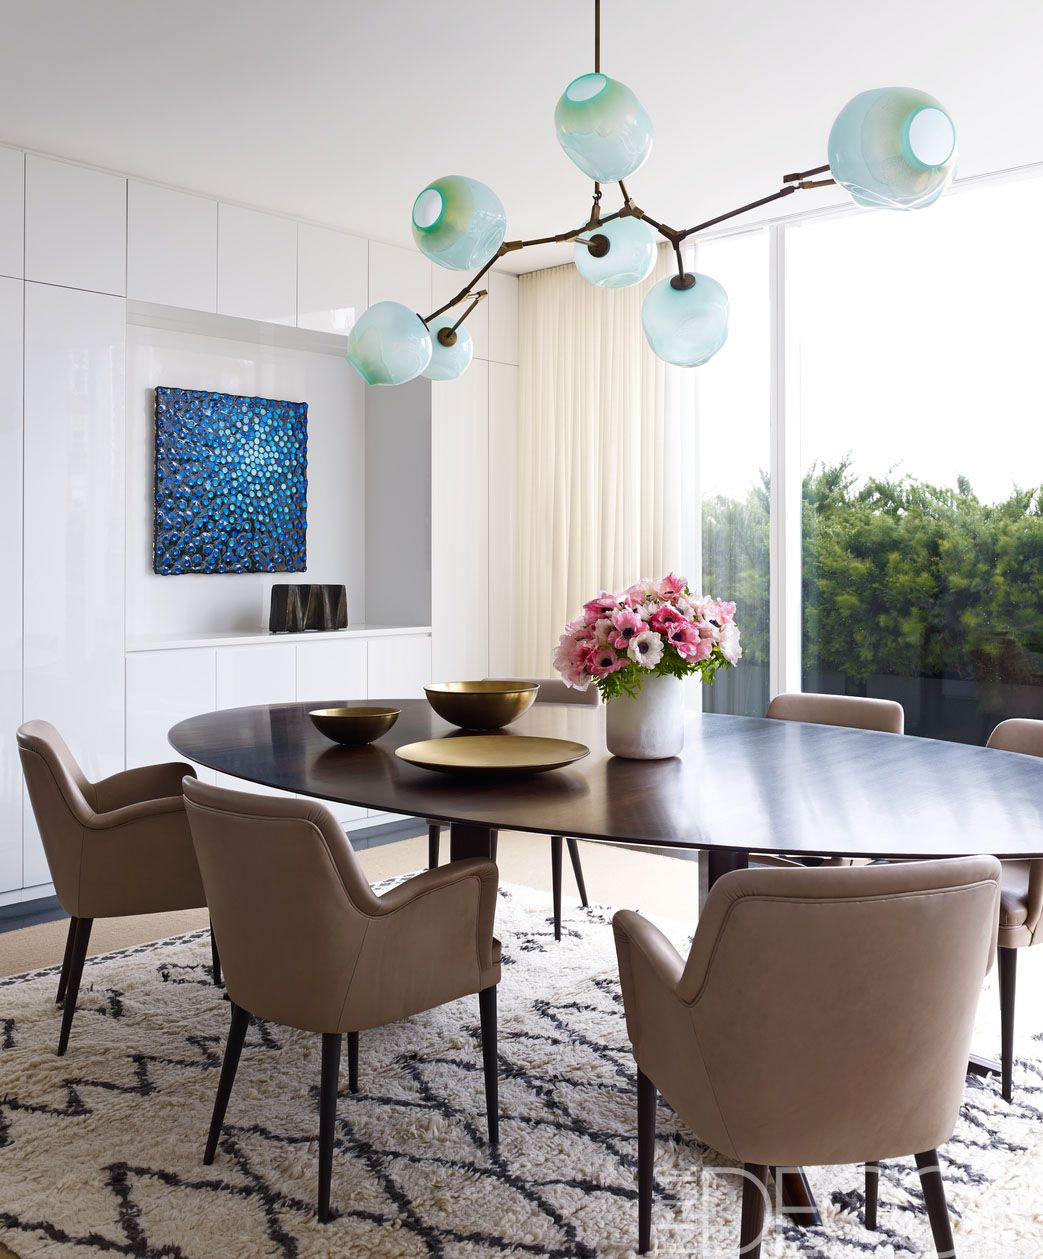 Modern dining room design ideas - 25 Modern Dining Room Decorating Ideas Contemporary Dining Room Furniture